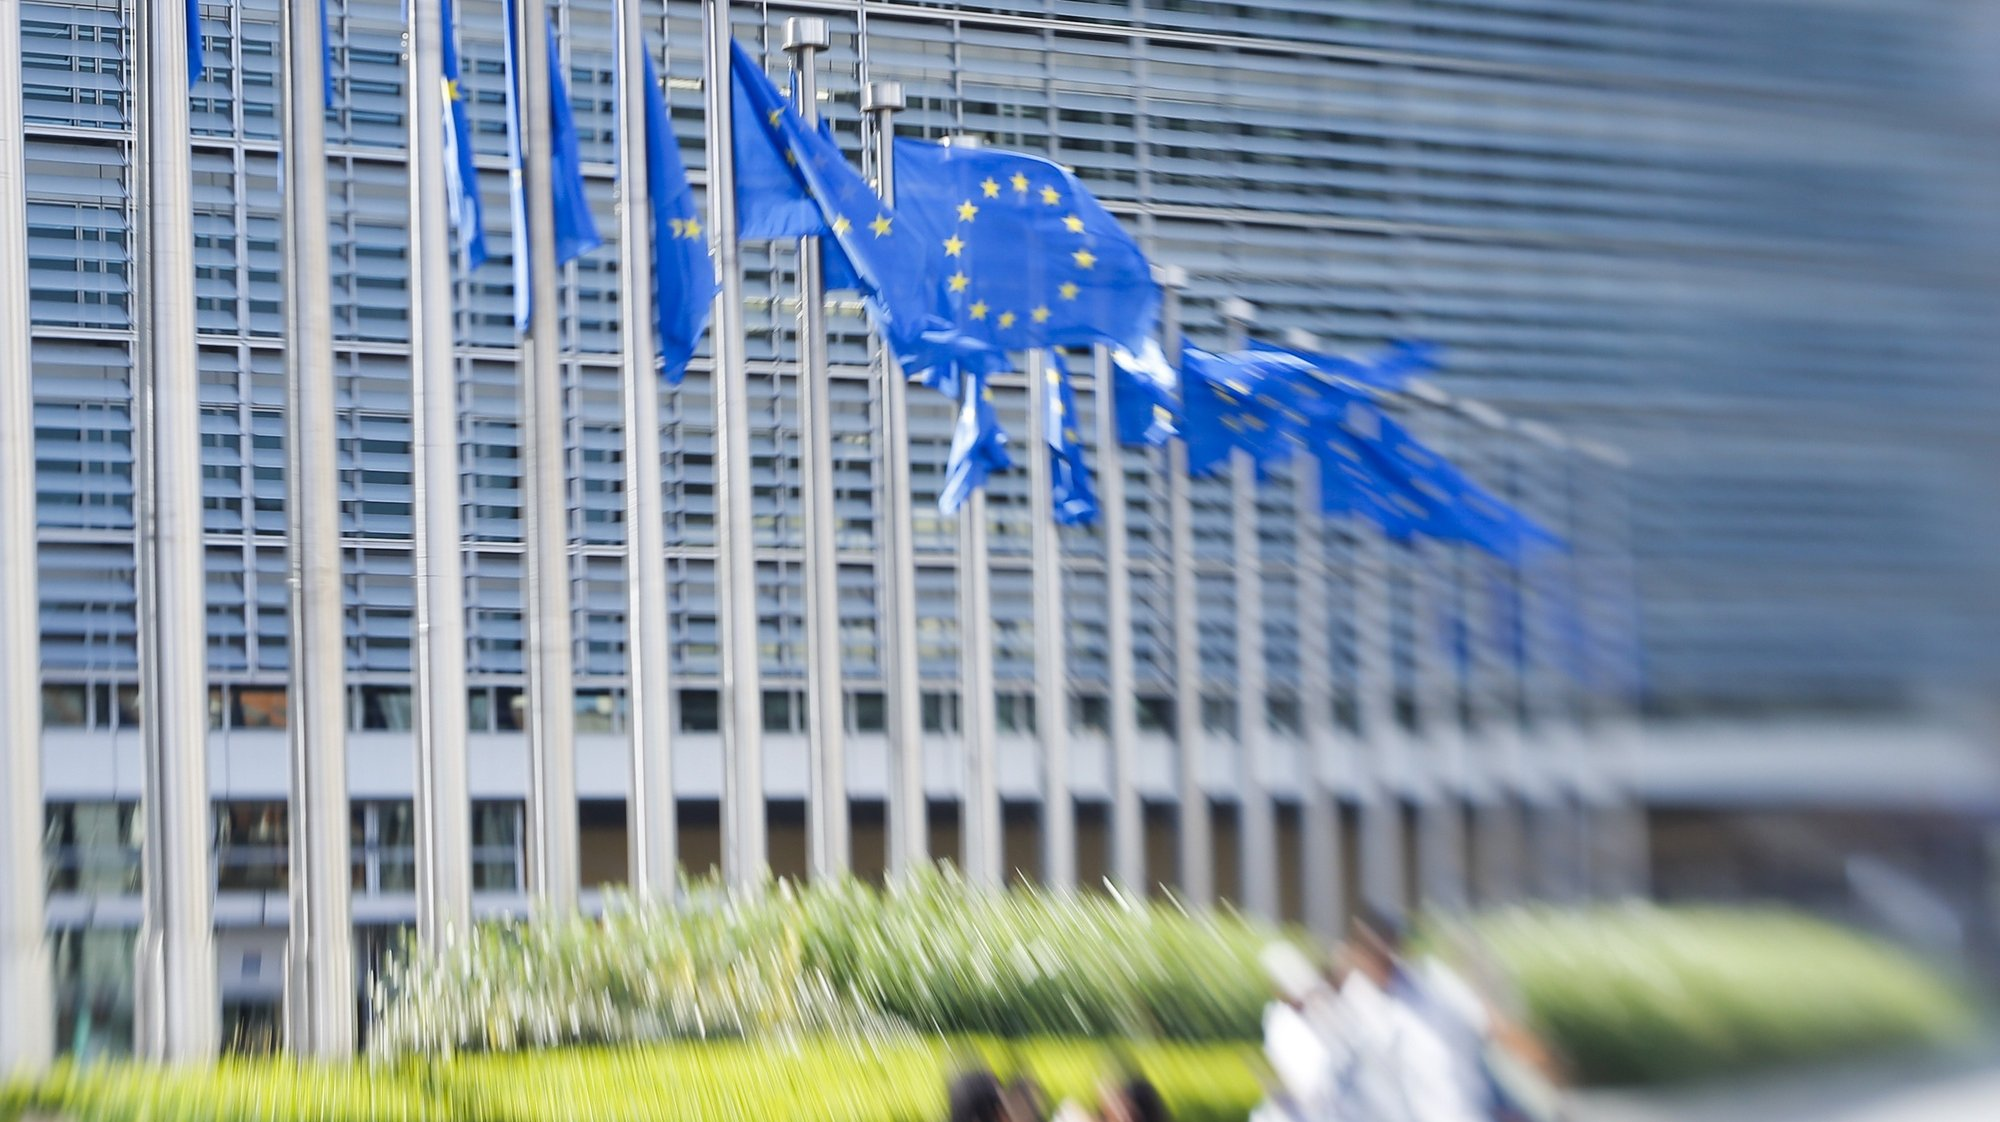 epa07239705 (FILE) - European flags in front of European Commission headquarters in Brussels, Belgium, 26 June 2018 (reissued 19 December 2018). According to a report by the New York Times, hackers have allegedly intercepted communications of European Union diplomatic staff for several years.  EPA/OLIVIER HOSLET